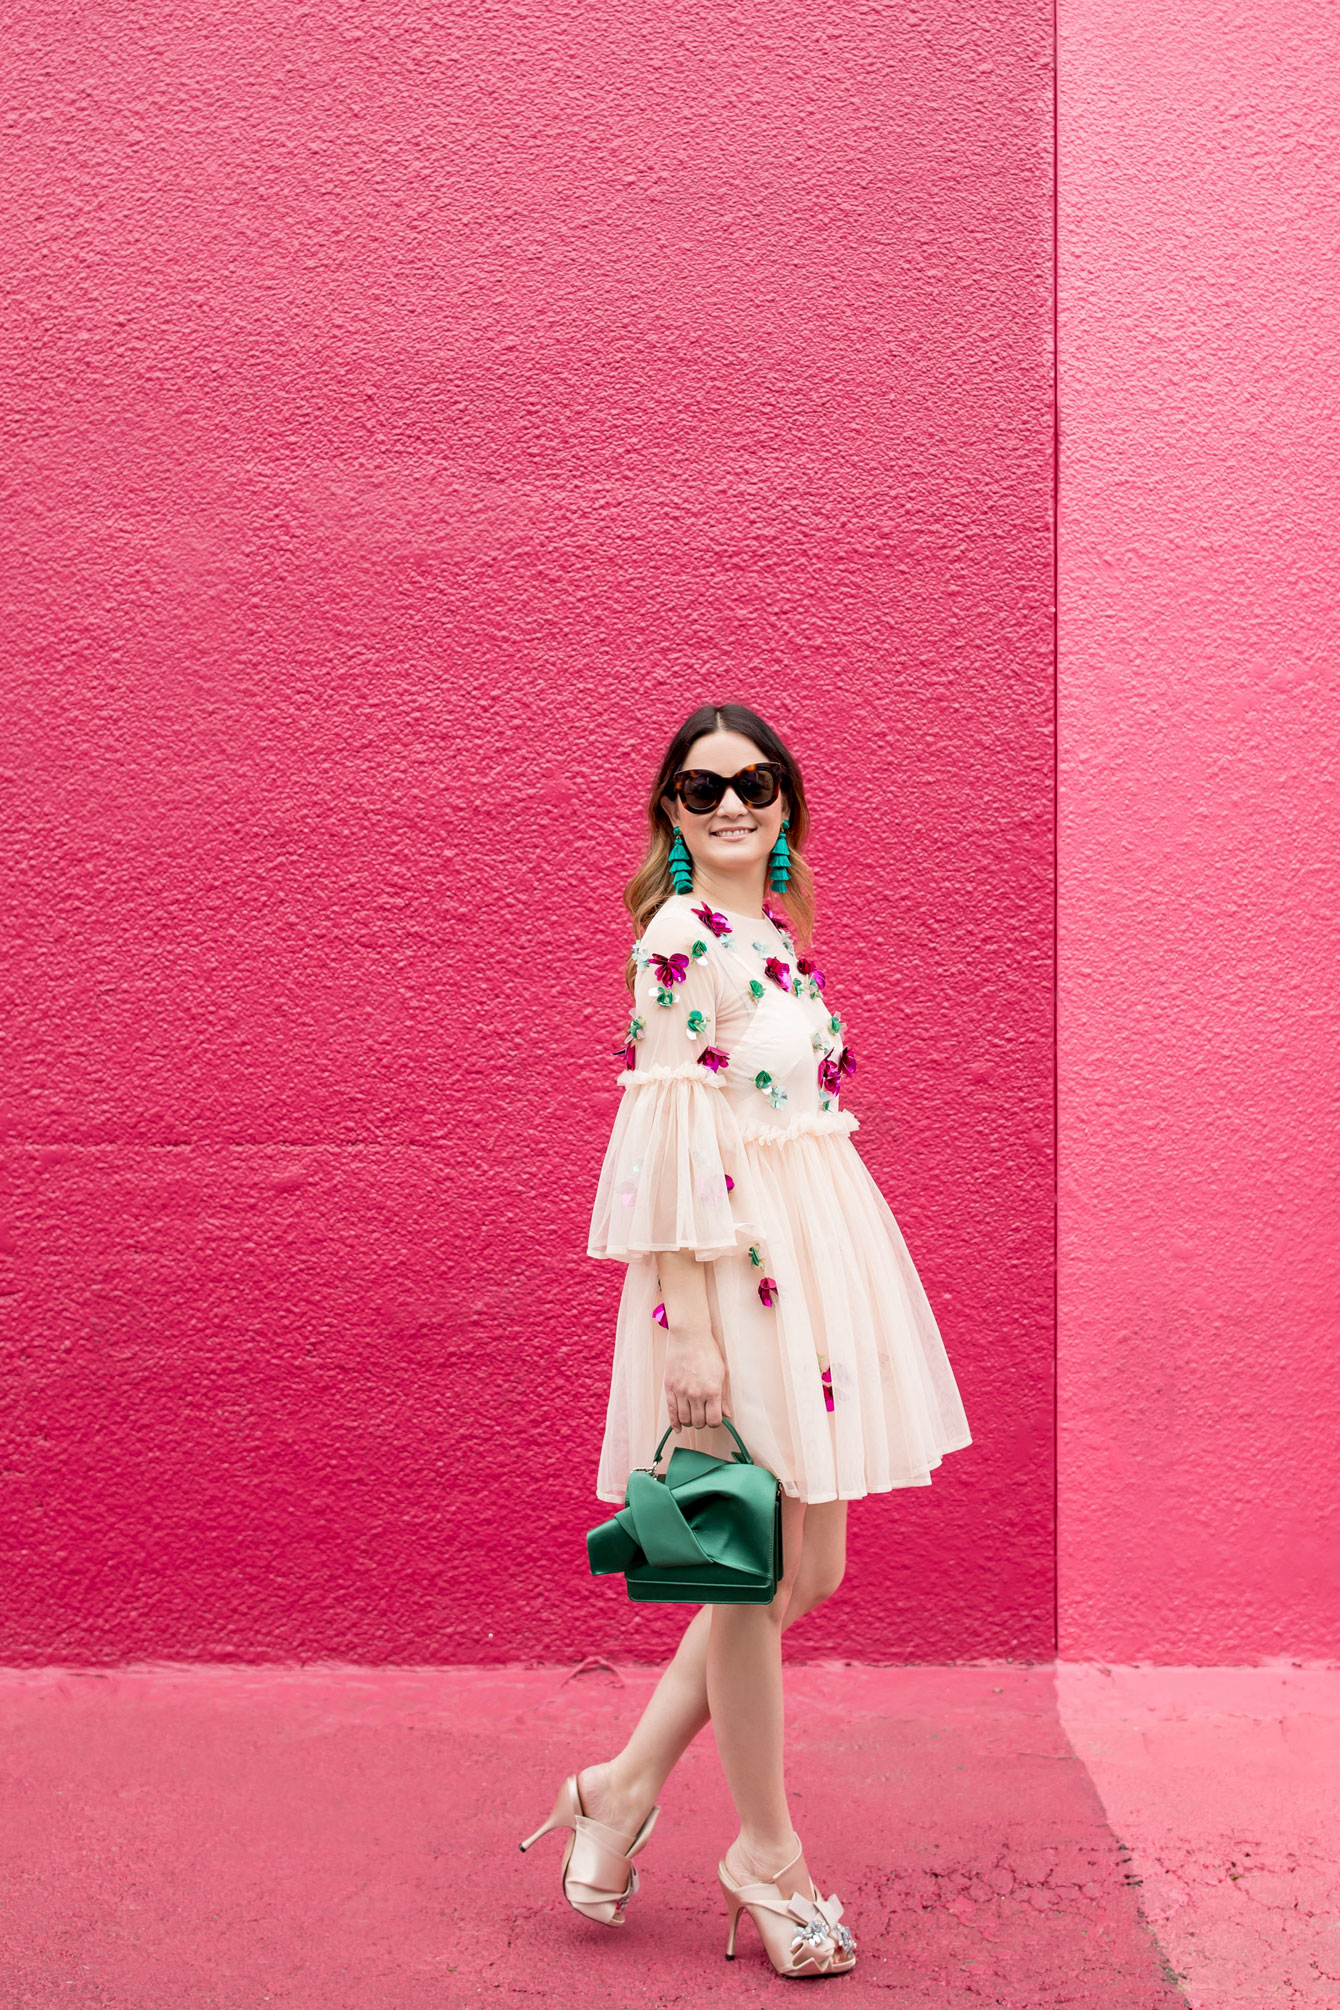 ASOS Pink Tulle Embellished Dress